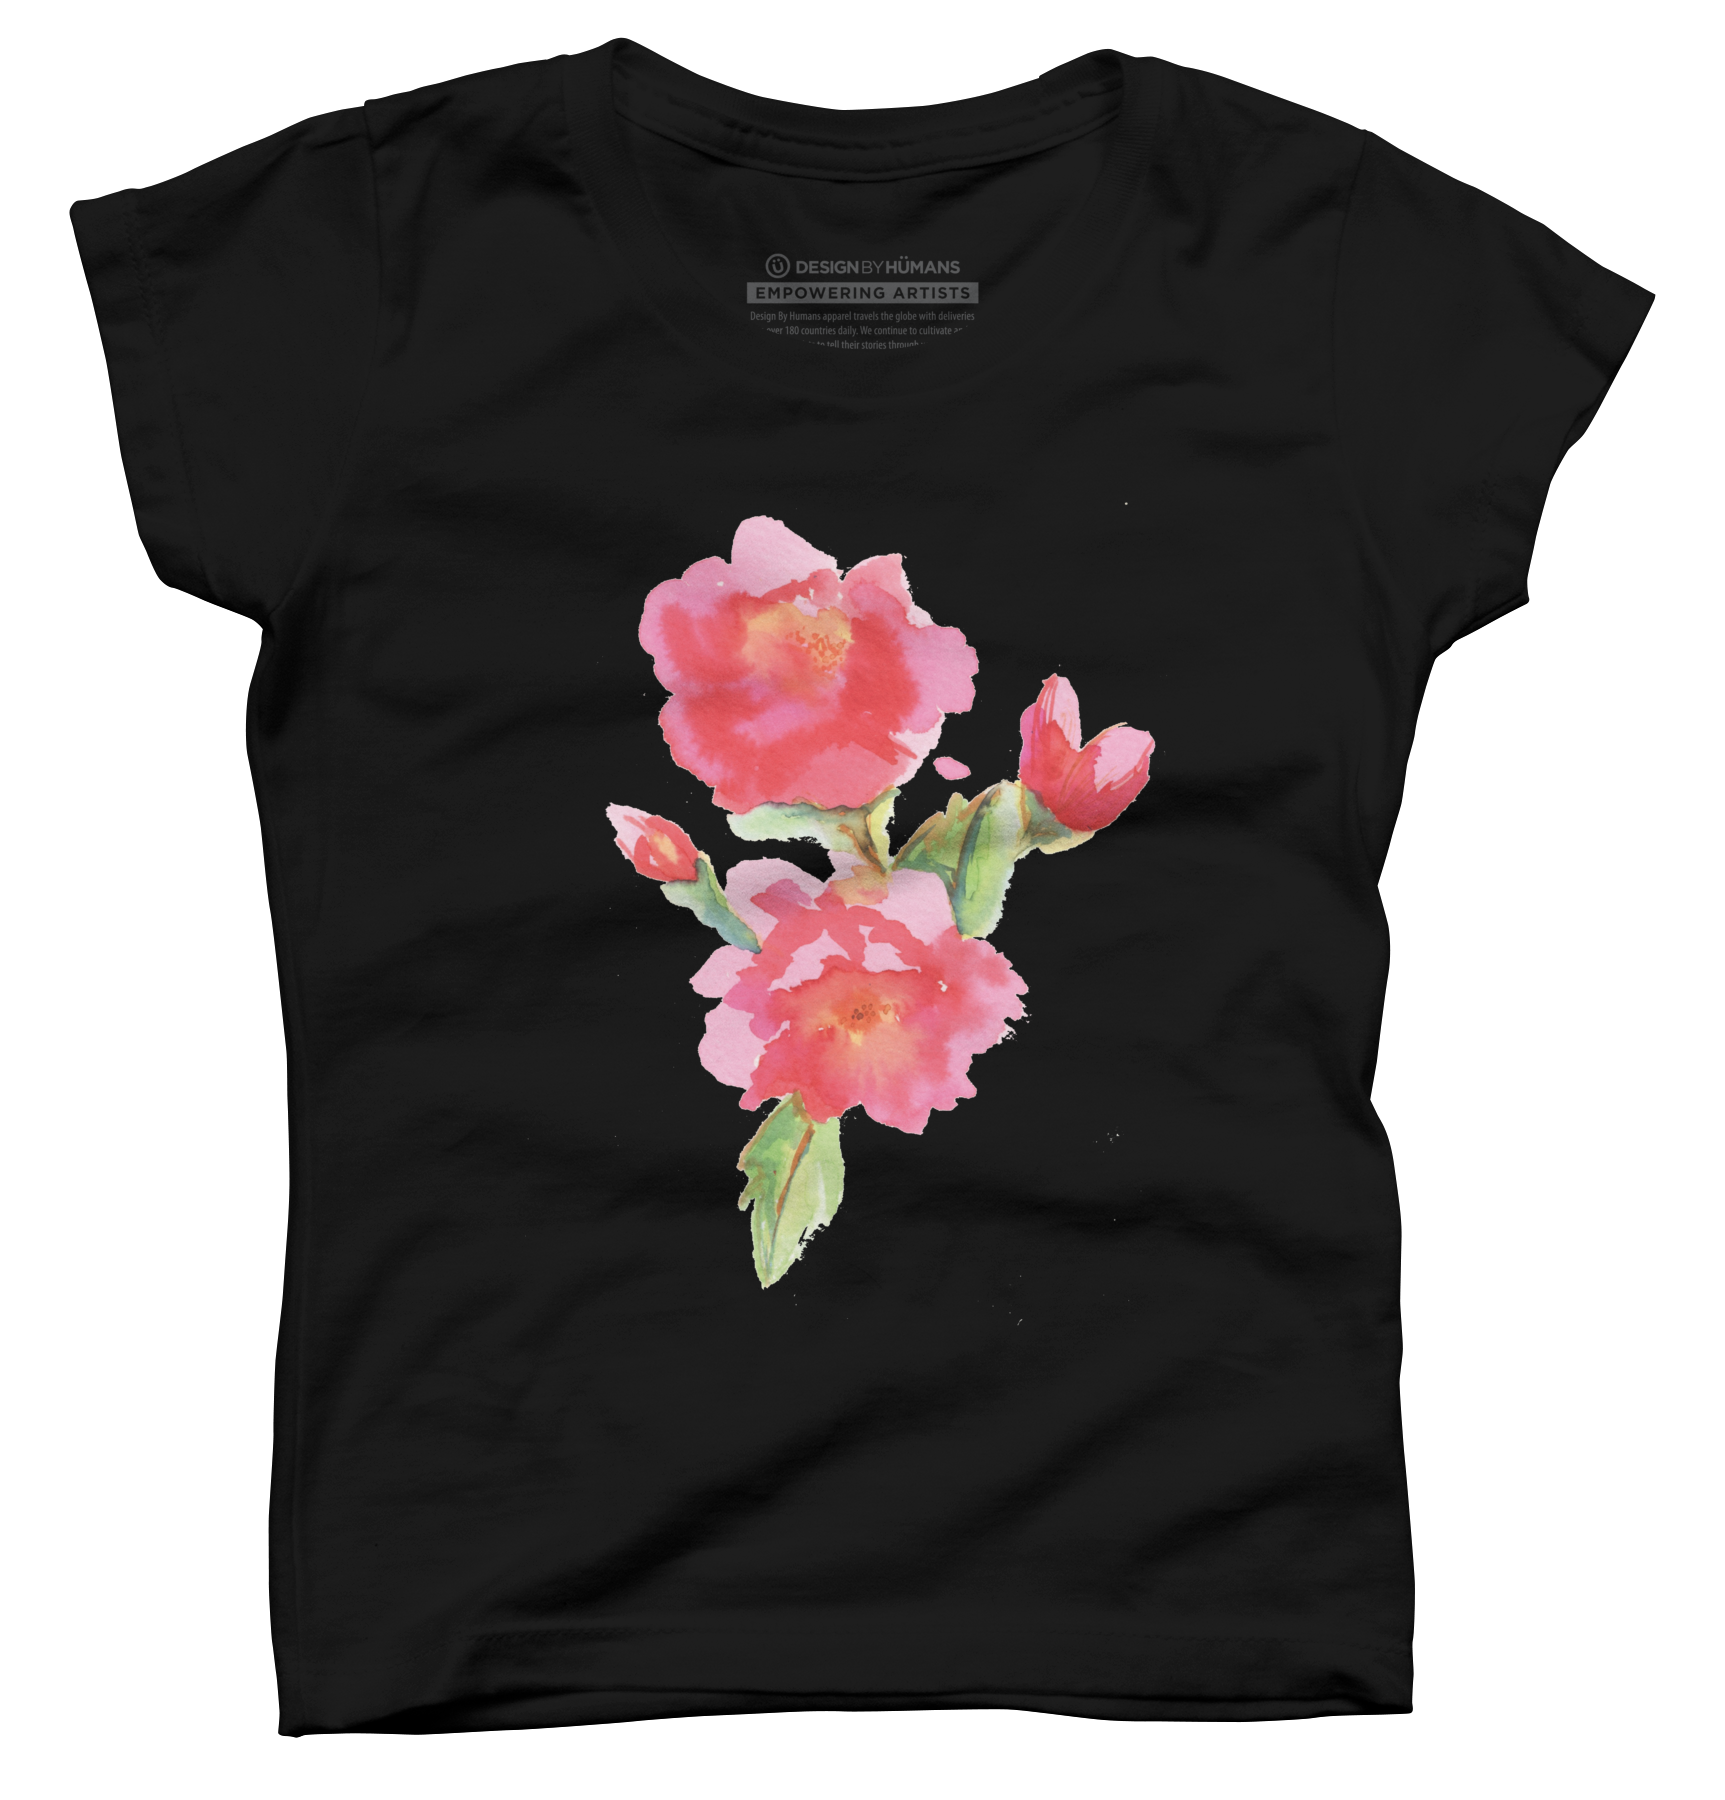 Water Color Roses Girls T Shirt 585060